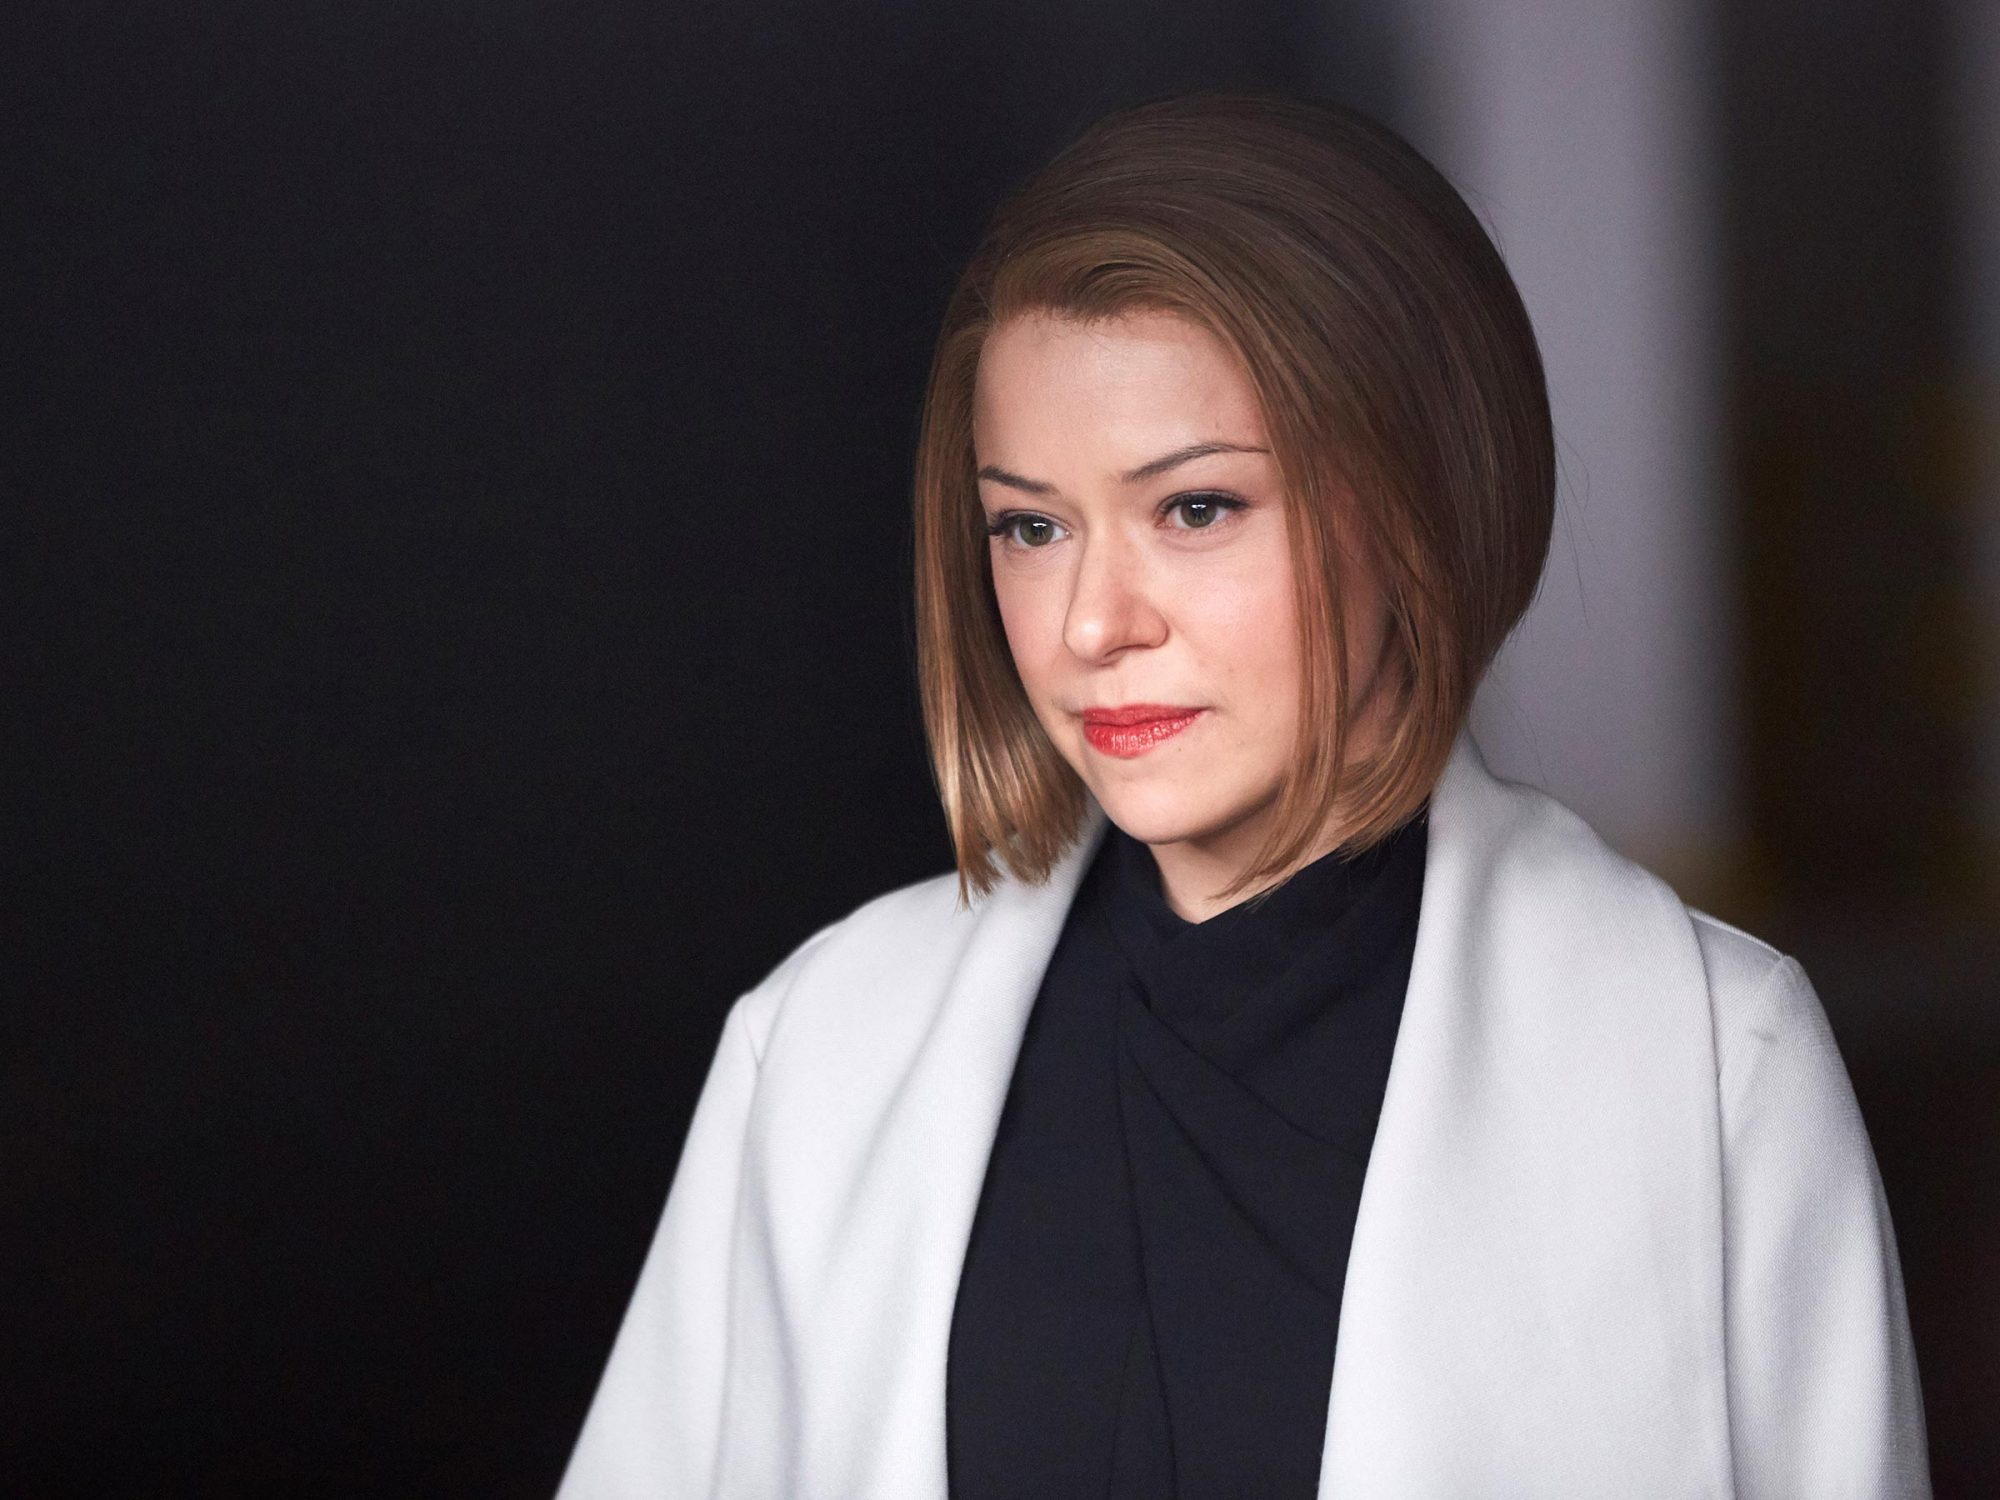 ORPHAN BLACK, Tatiana Maslany in 'From Dancing Mice To Psychopaths' (Season 4, Episode 10, aired